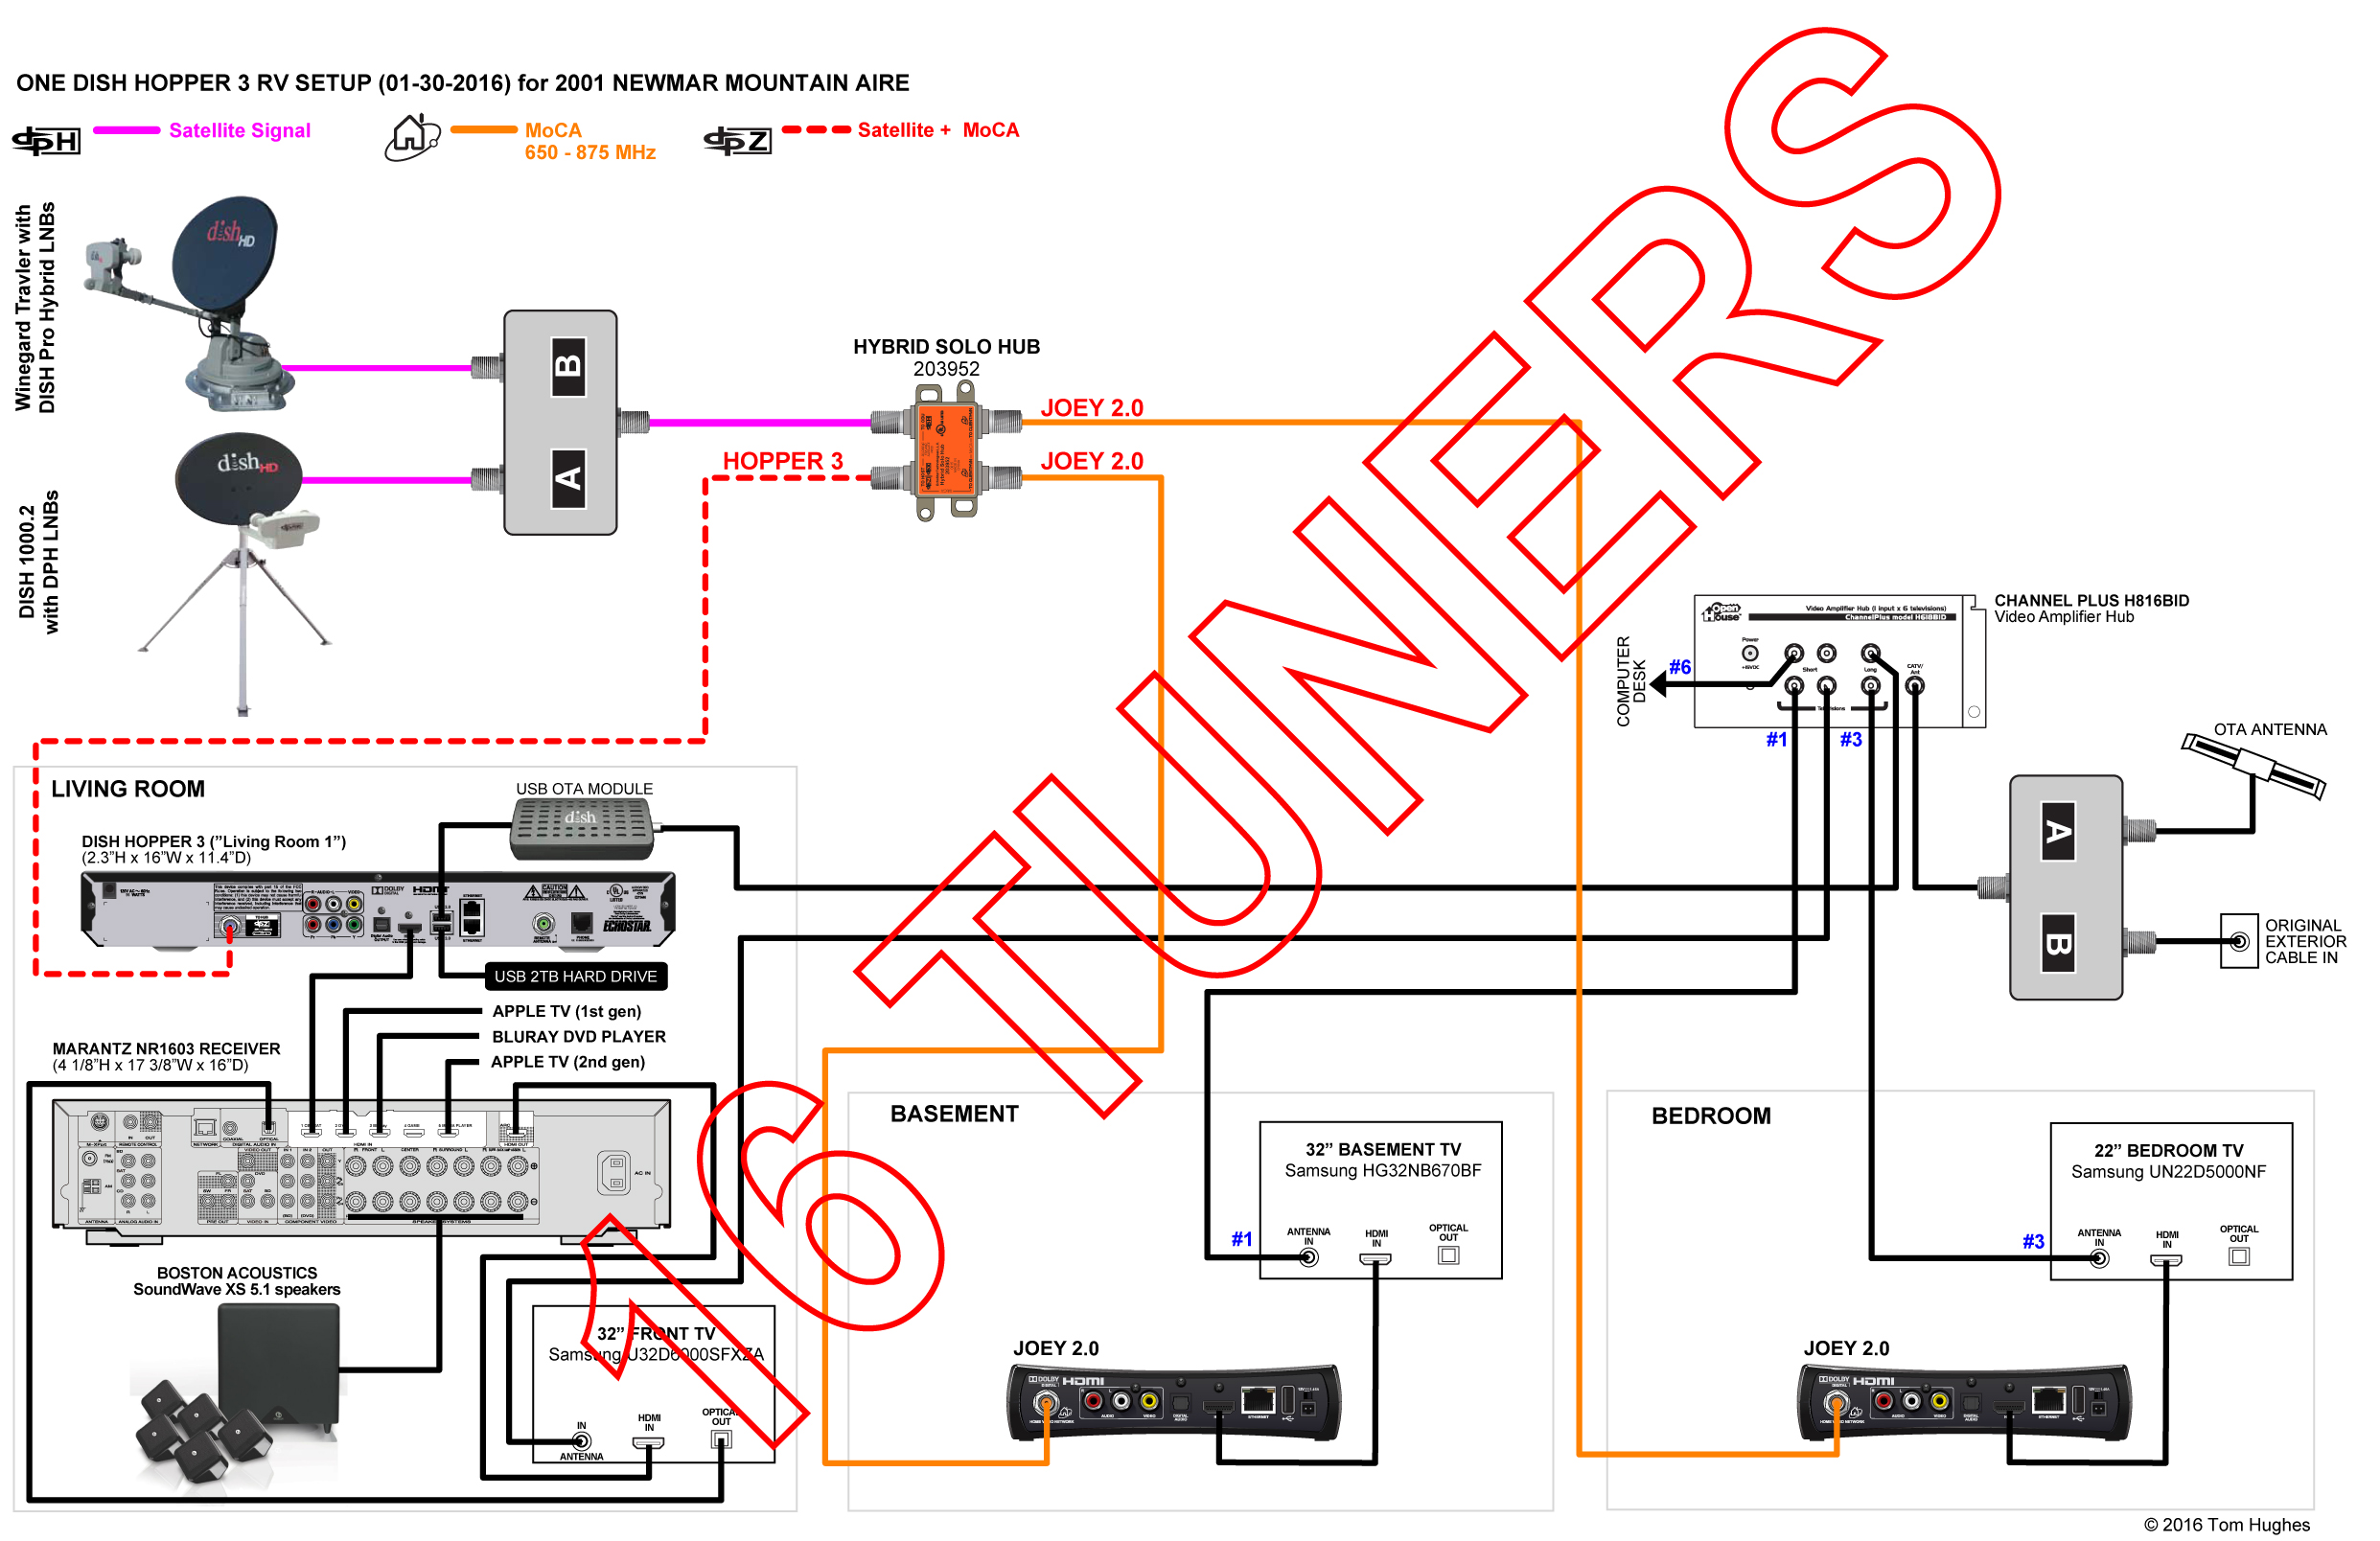 2001 madp new av setup_hopper_one_hopper3_01_30_2016 1 hopper 3 (1 30 2016) rvseniormoments hopper 3 wiring diagrams at gsmx.co